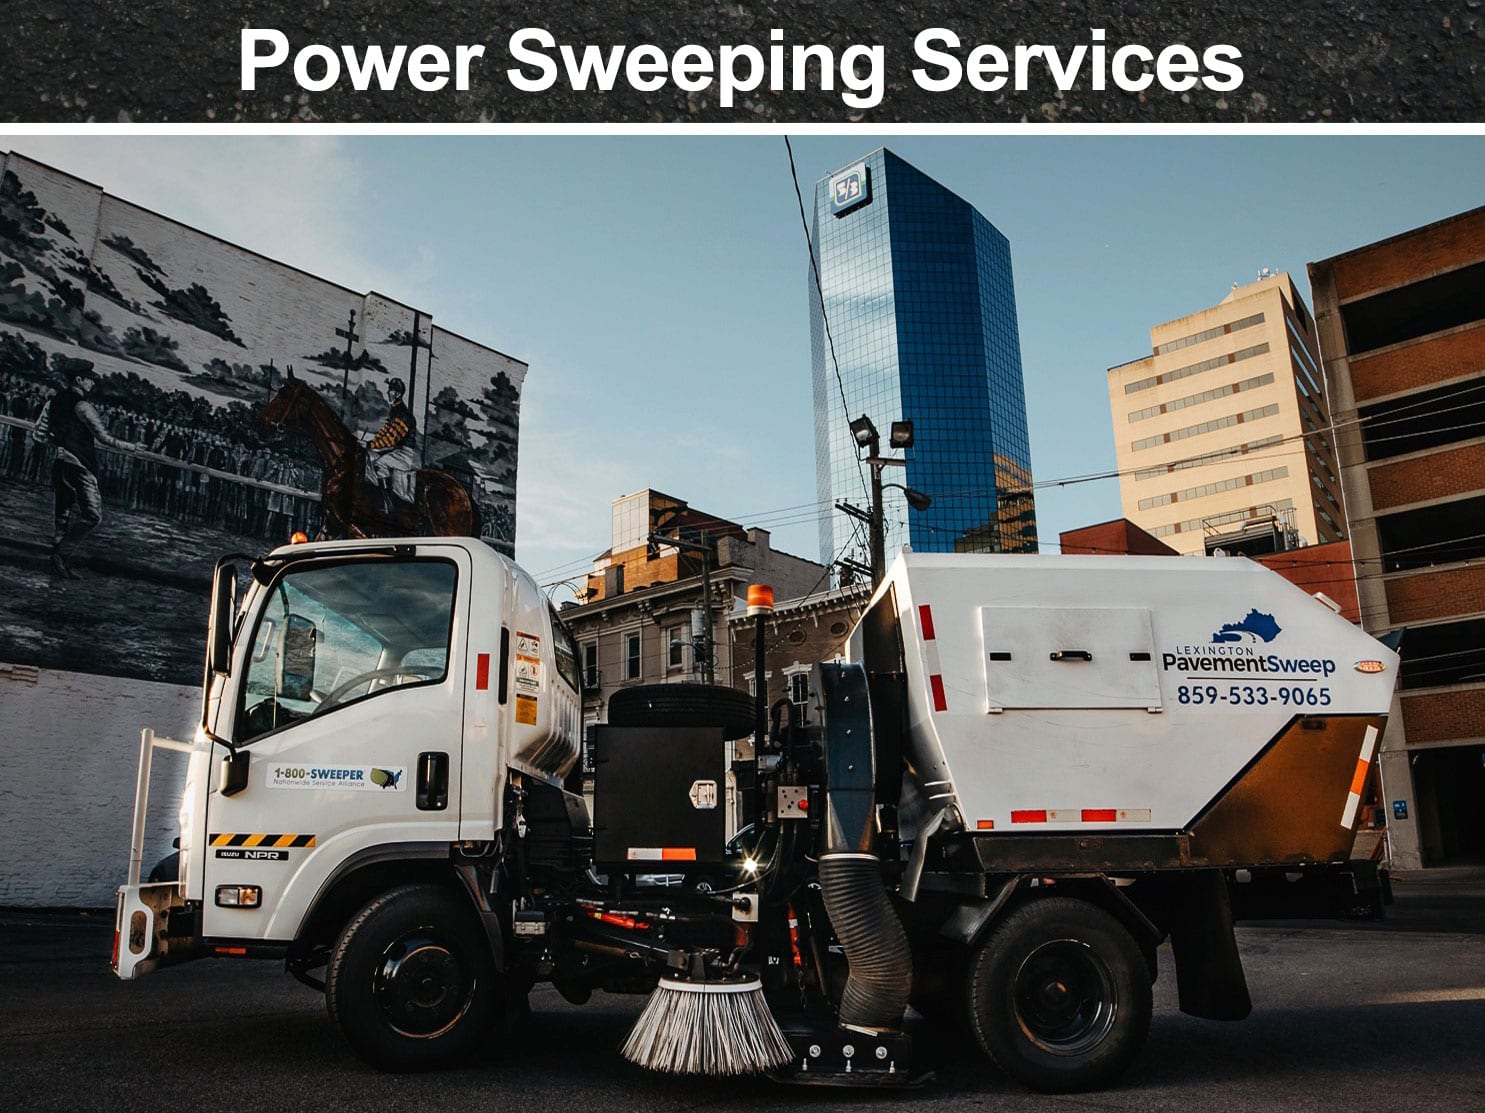 Power-Sweeping-Services